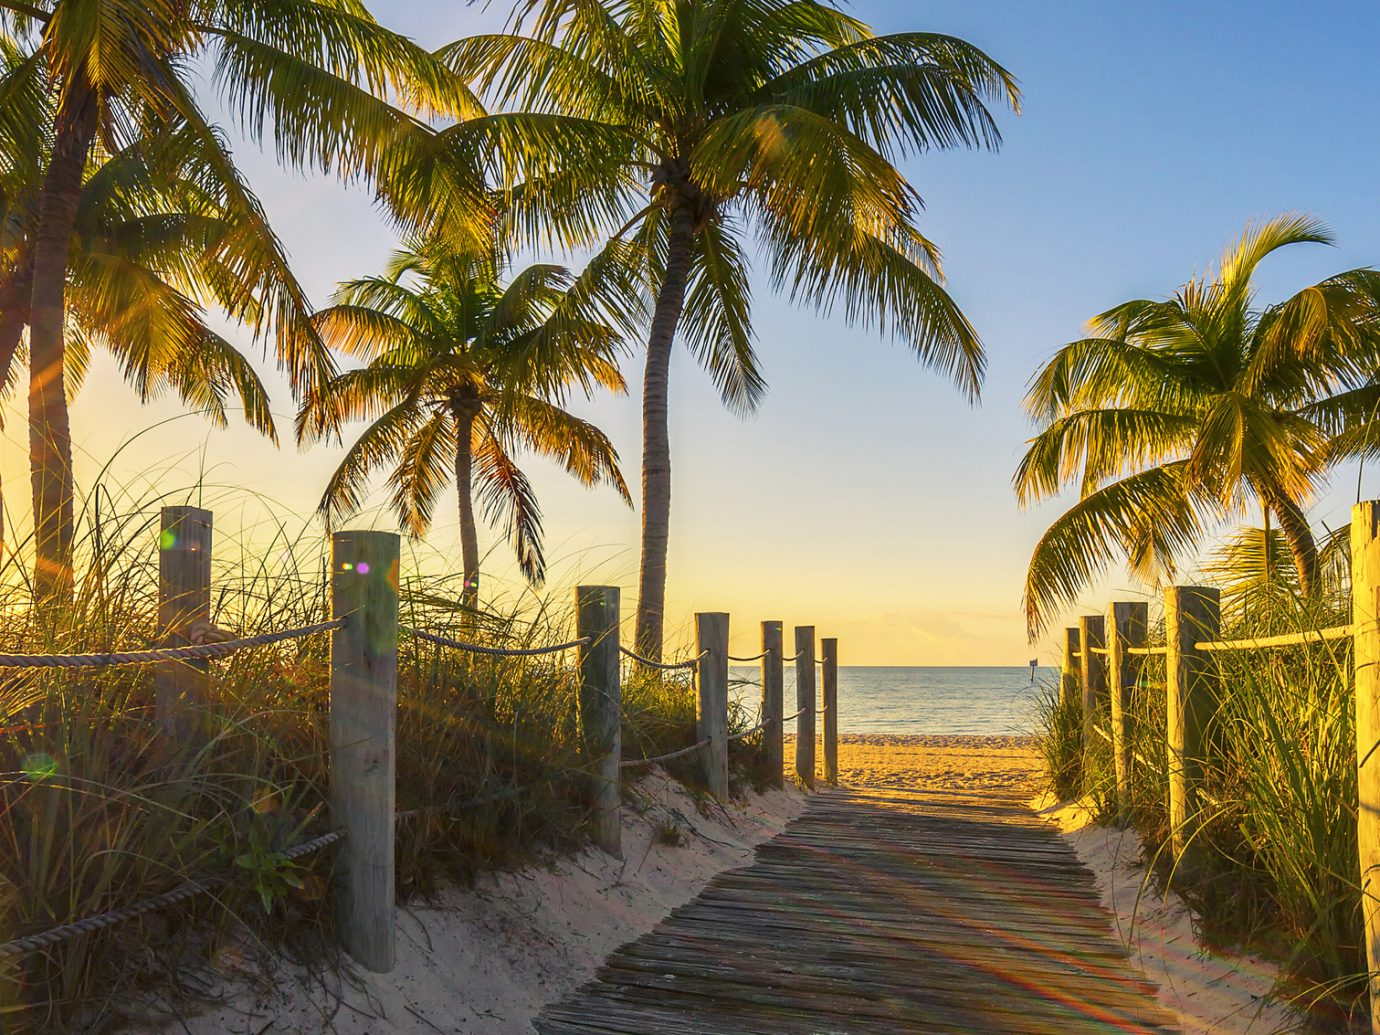 Passage to the beach at sunrise- Key West, USA